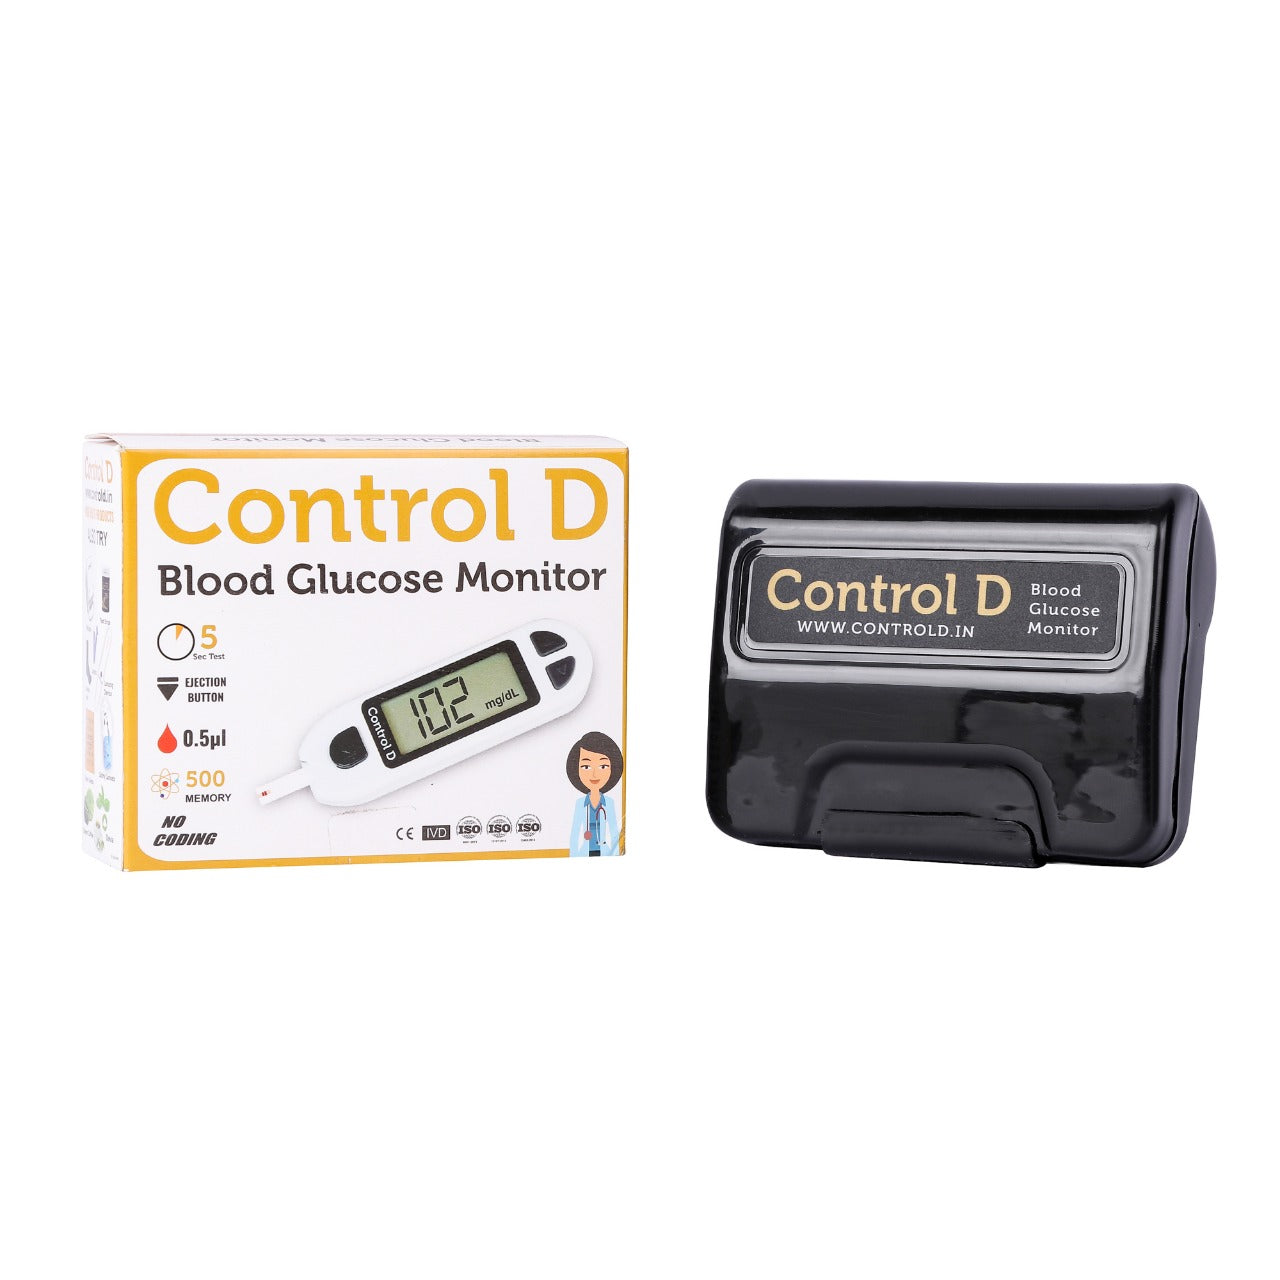 Control D White Meter Kit with 10 Strips, Lancets & Swabs